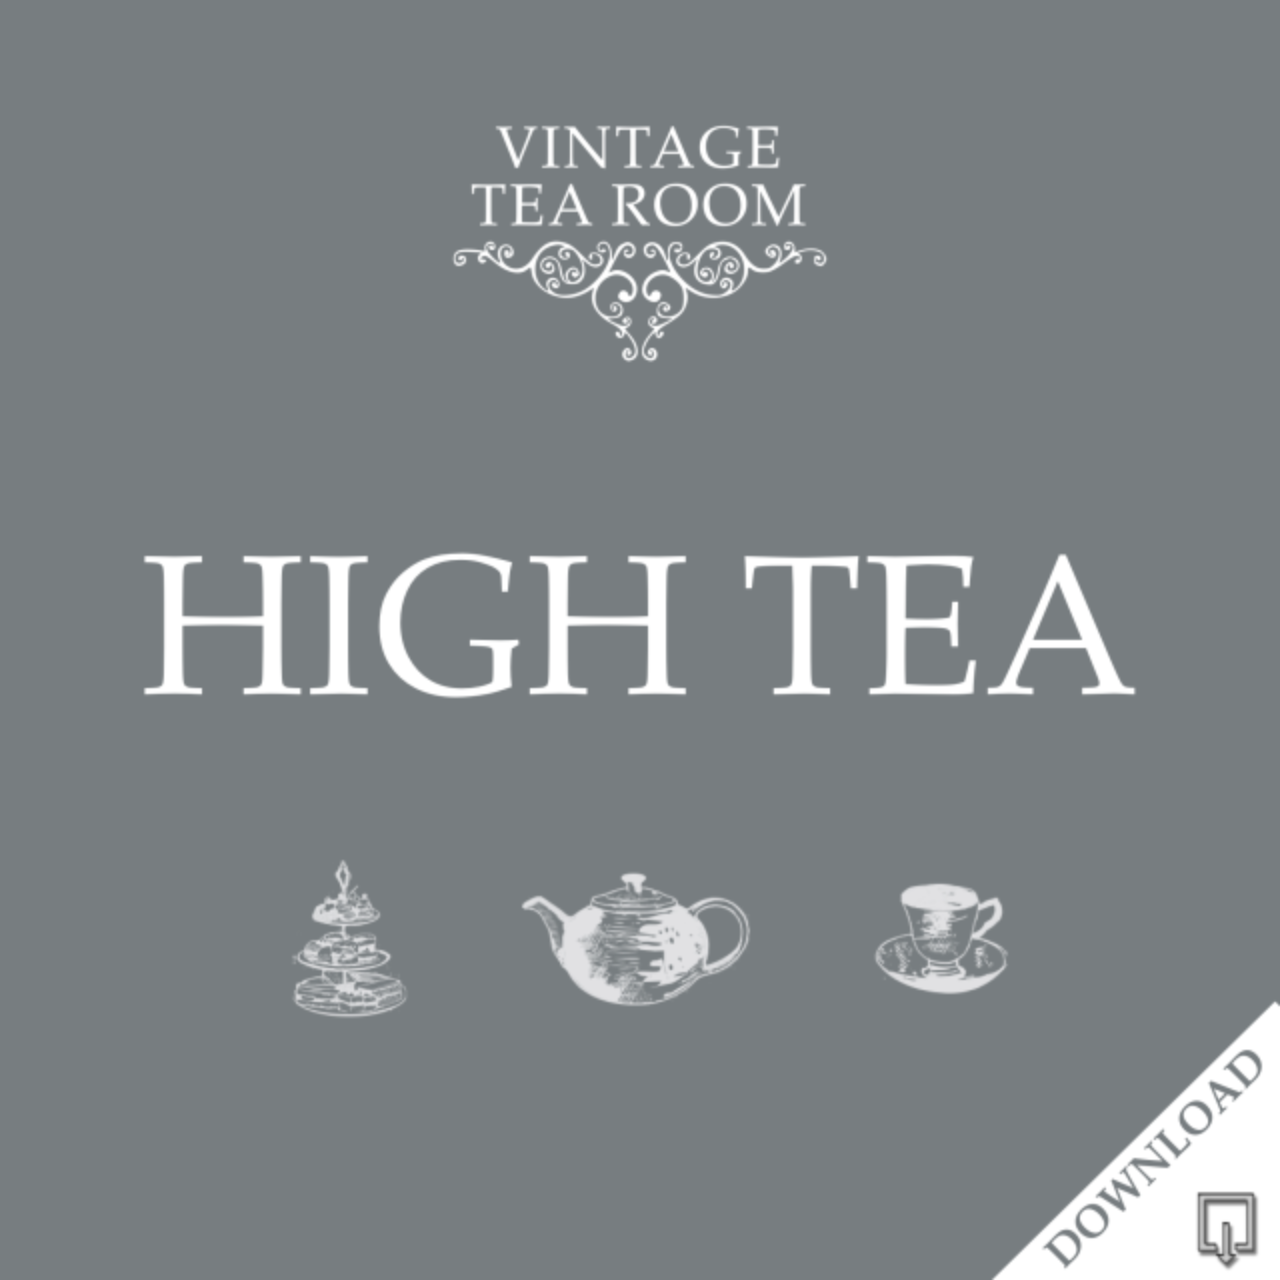 Vintage High Tea For Three - Downloadable Voucher